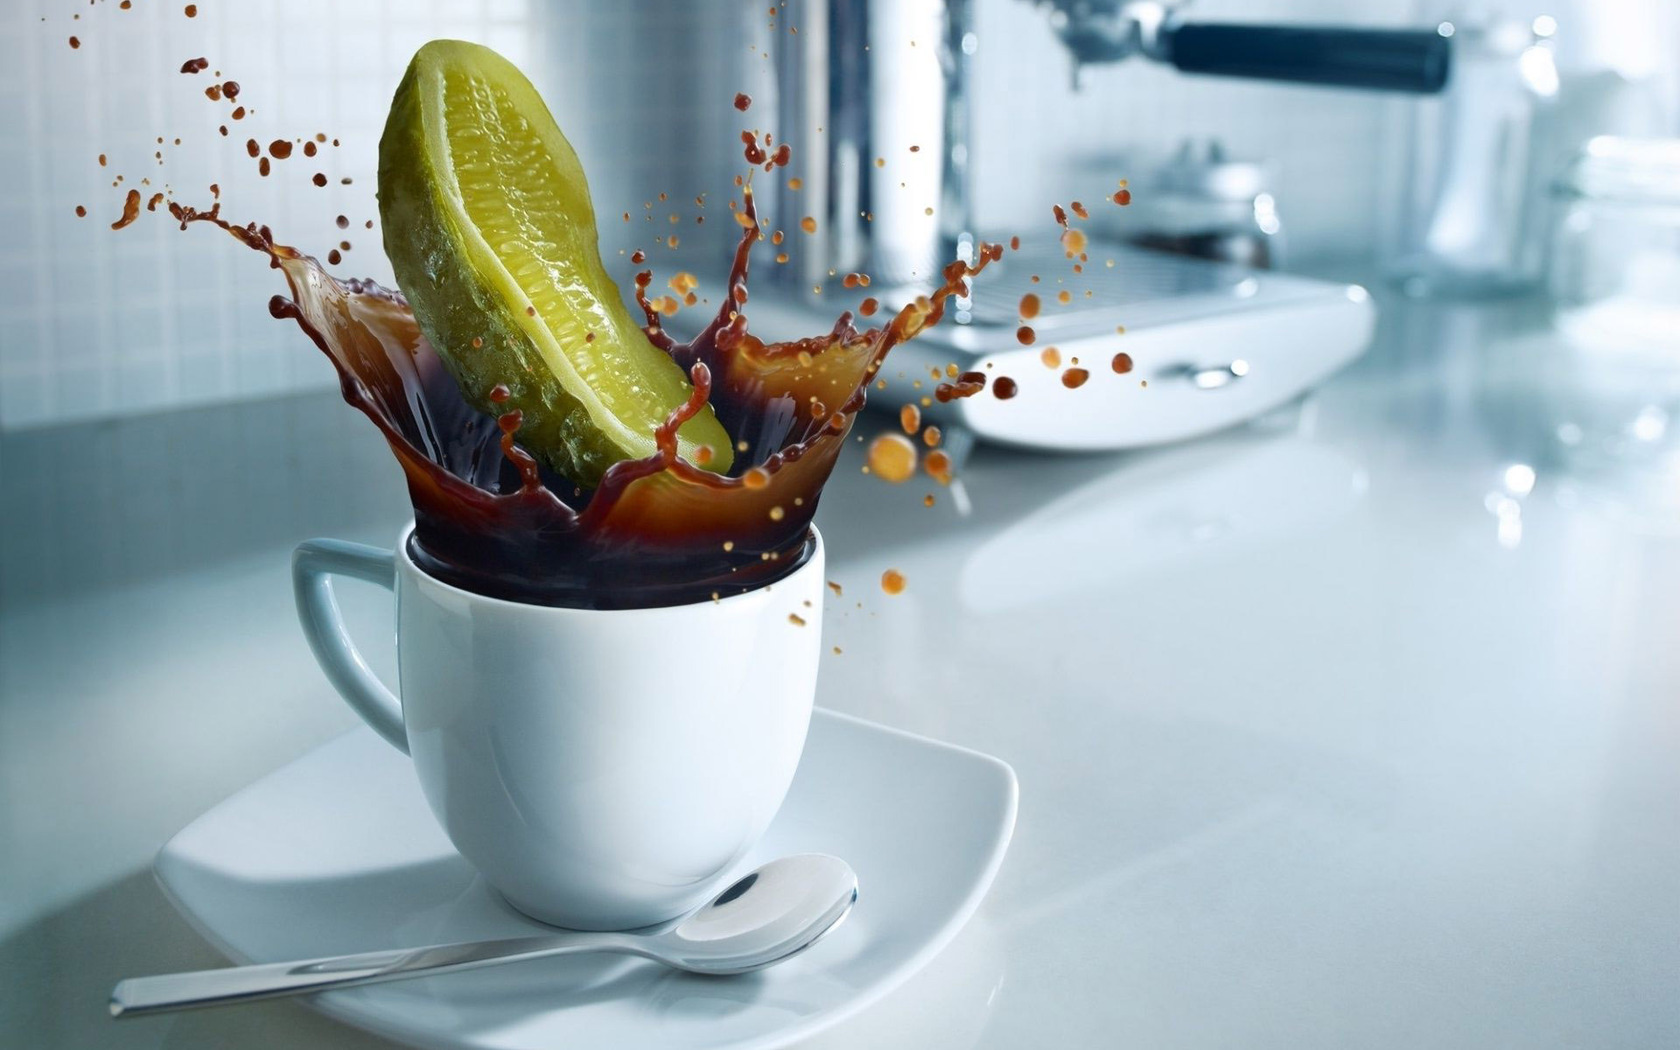 Pickle in the coffee